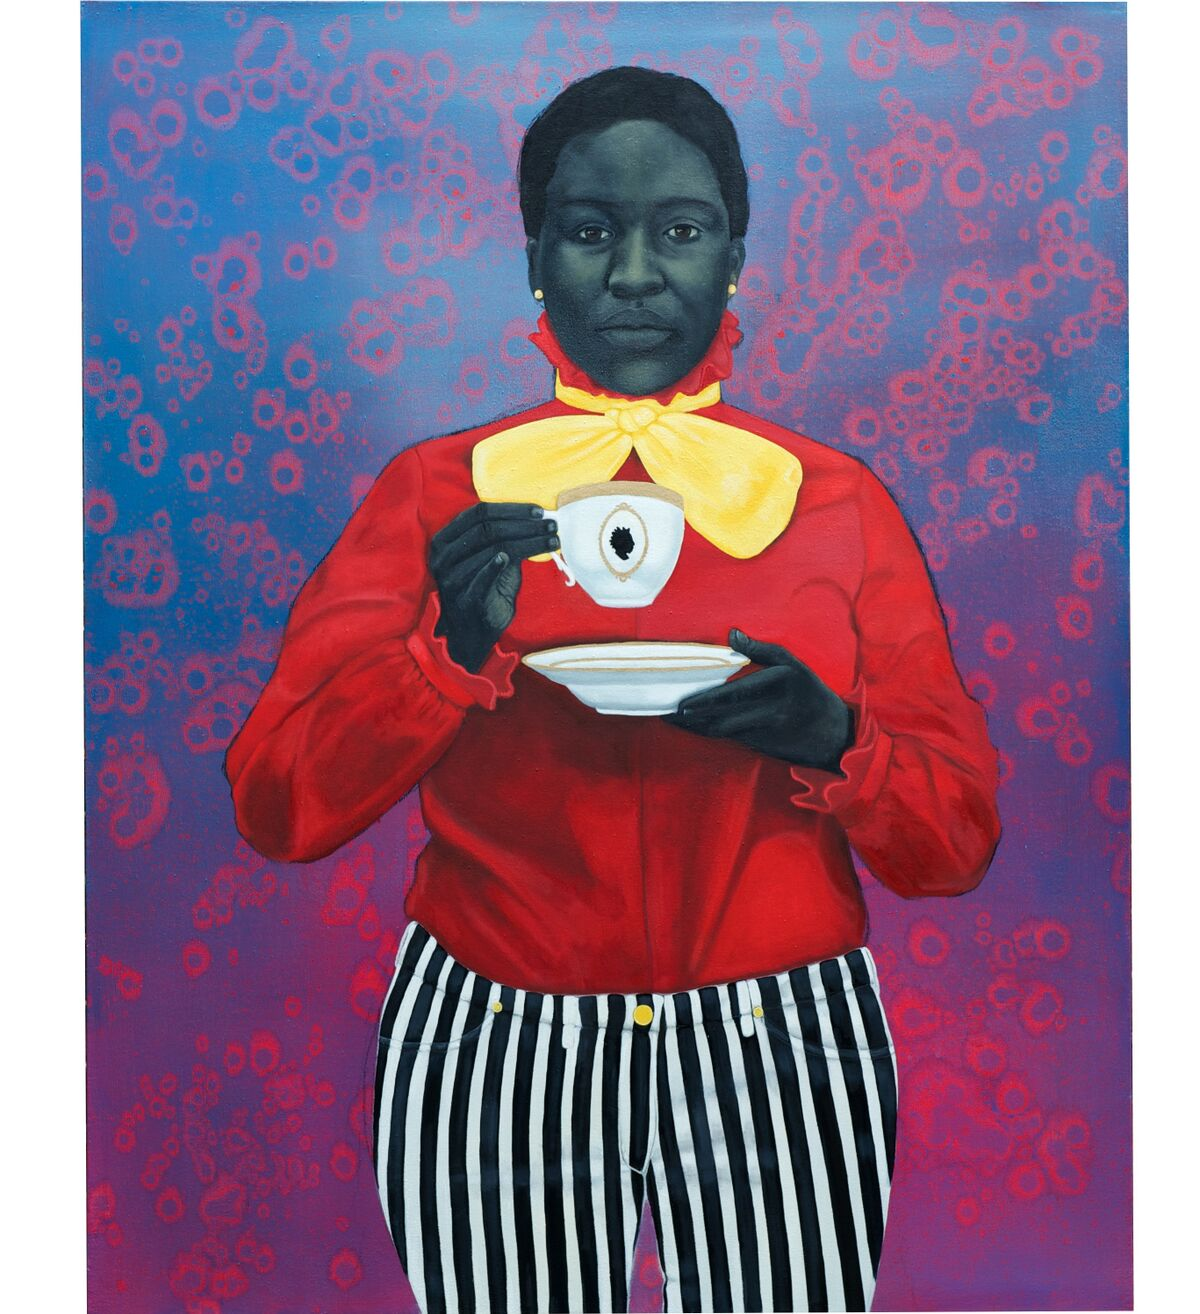 Amy Sherald, Grand Dame Queenie, 2013, oil on canvas, 54 x 43 in. (137.2 x 109.2 cm). Public Collection, National Museum of African American History and Culture, Washington, D.C. Courtesy the artist and Monique Meloche Gallery, Chicago.